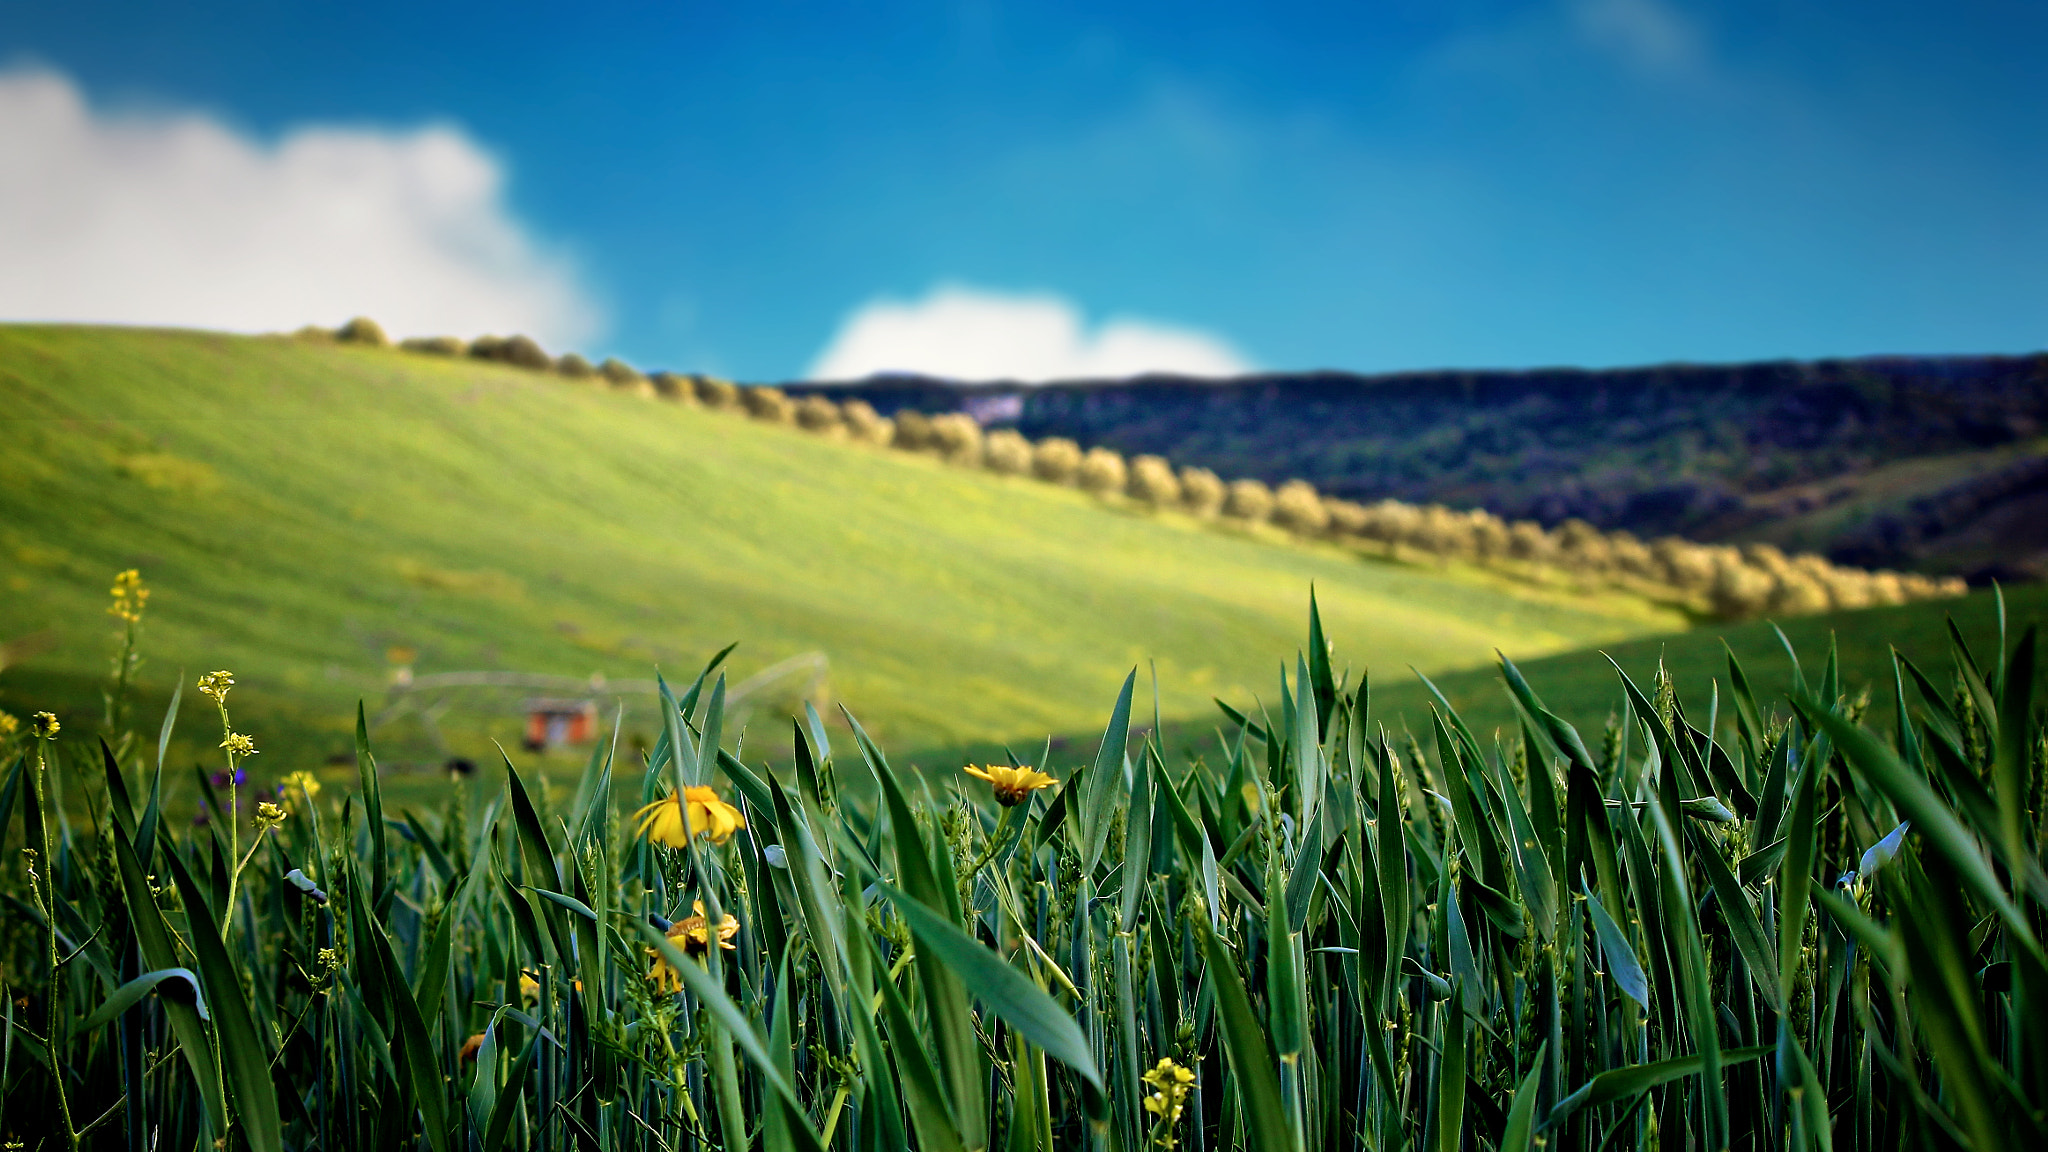 Photograph Green Hill (2) by Rui Mendonza on 500px